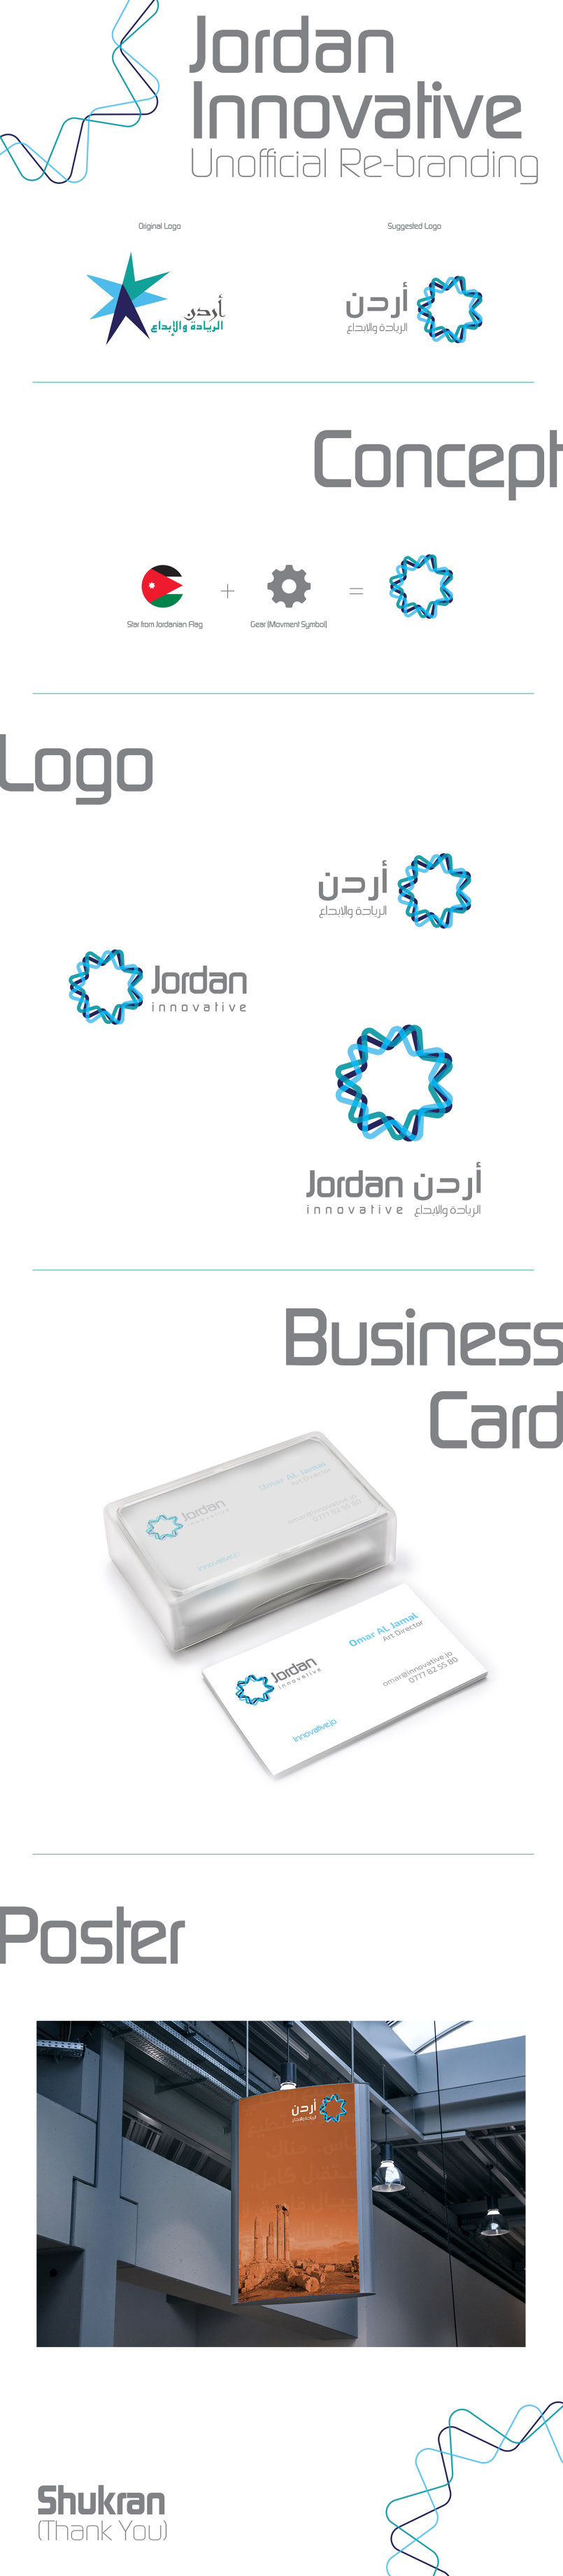 Jordan Innovative - Unofficial Re-branding